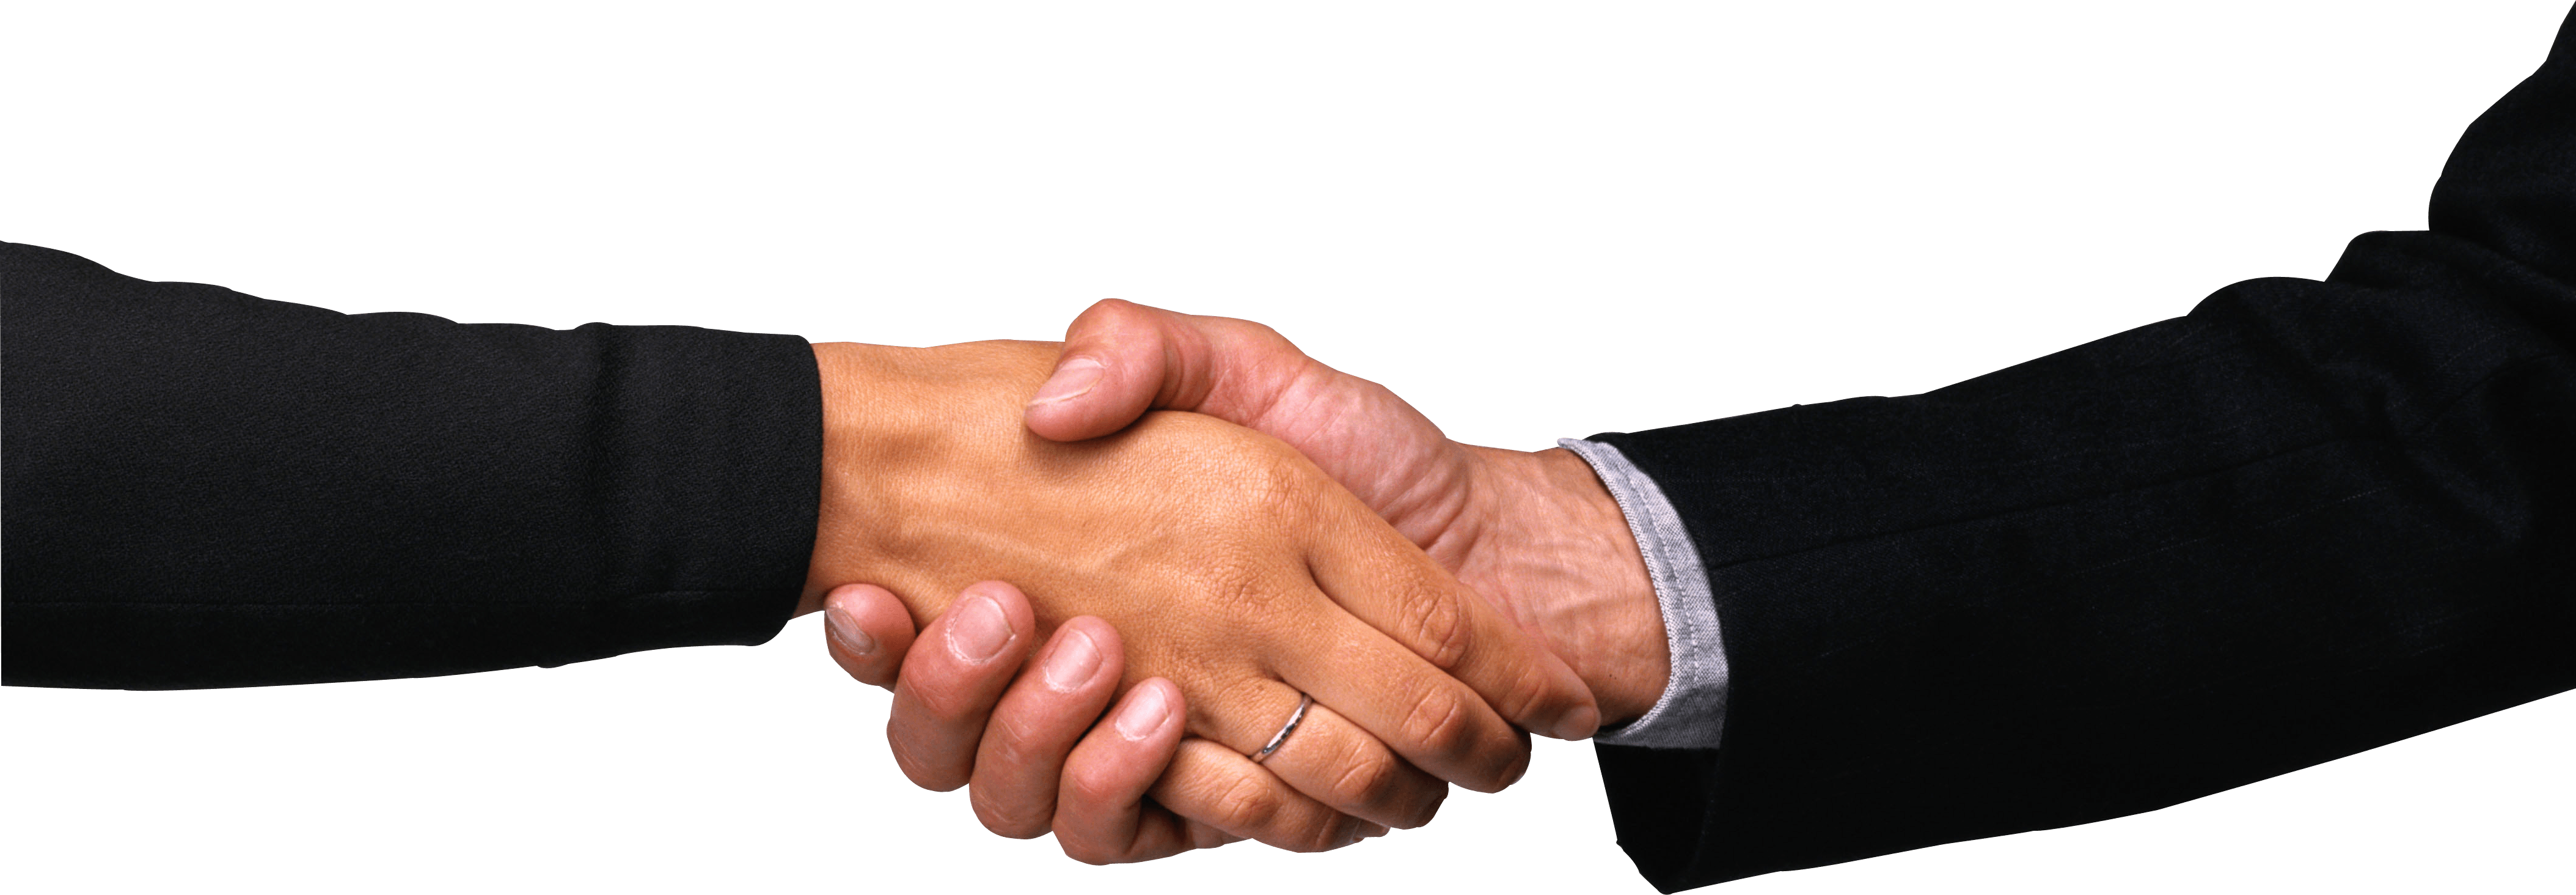 Handshake png. Hd transparent images pluspng